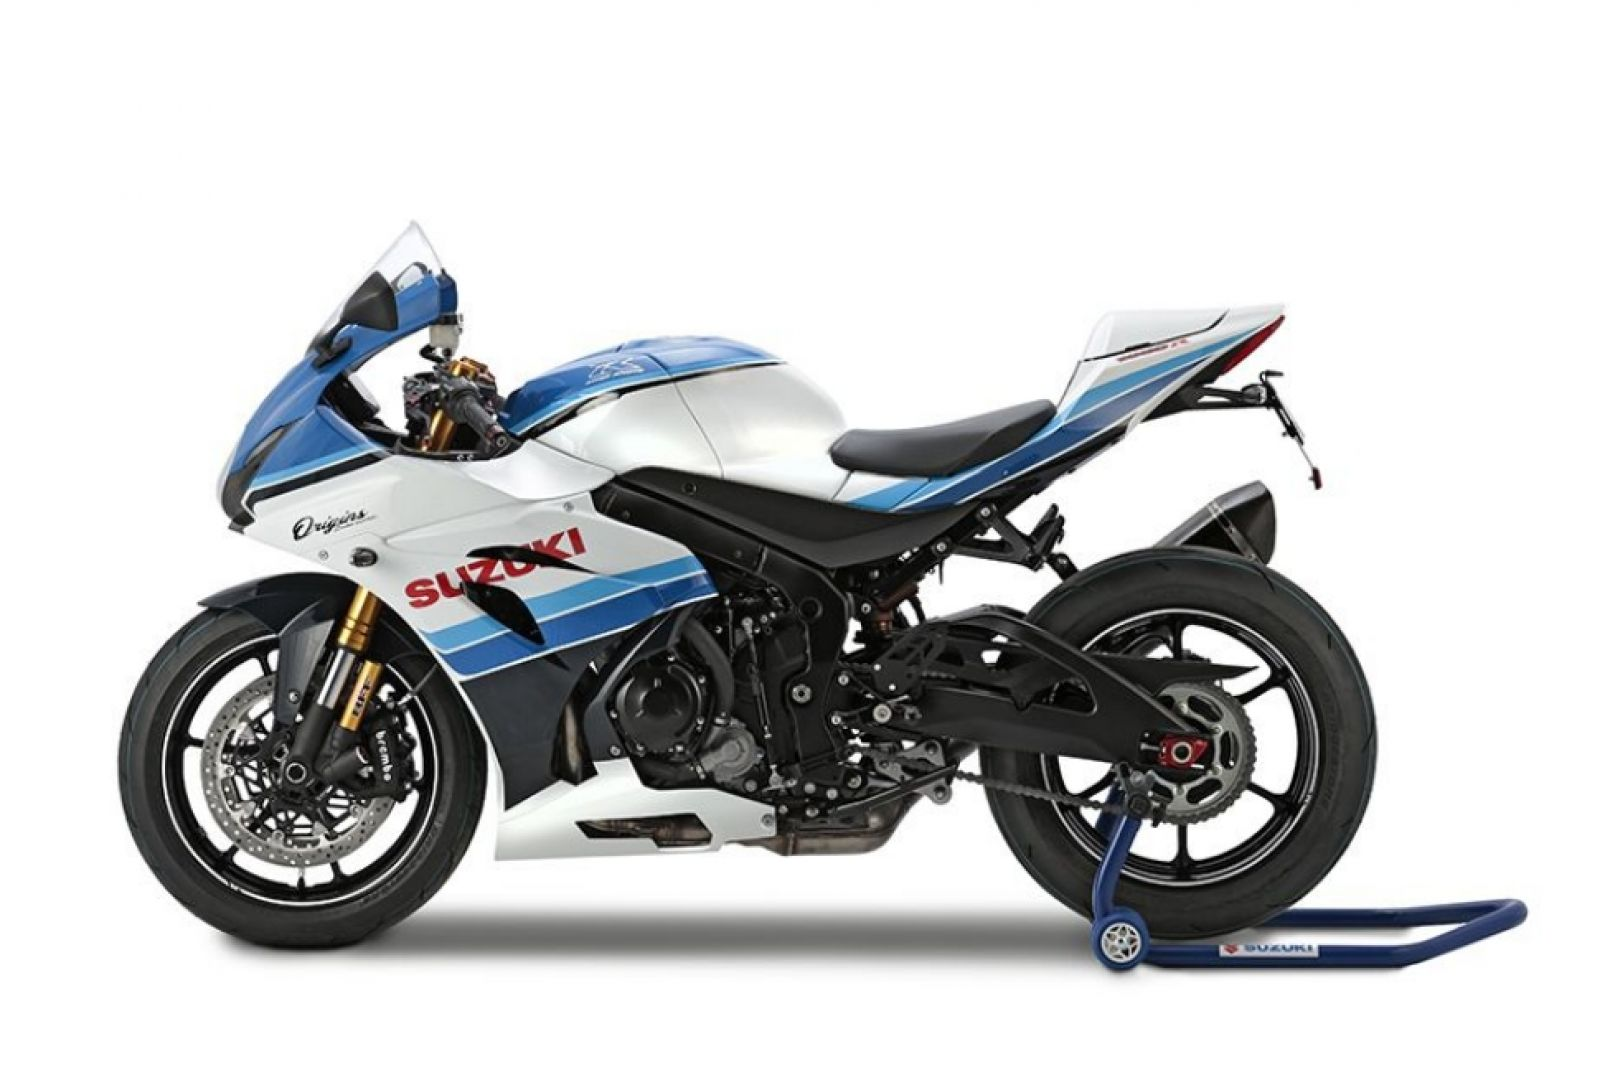 actualité - GSX-R1000R Origins - image d'illustration 14